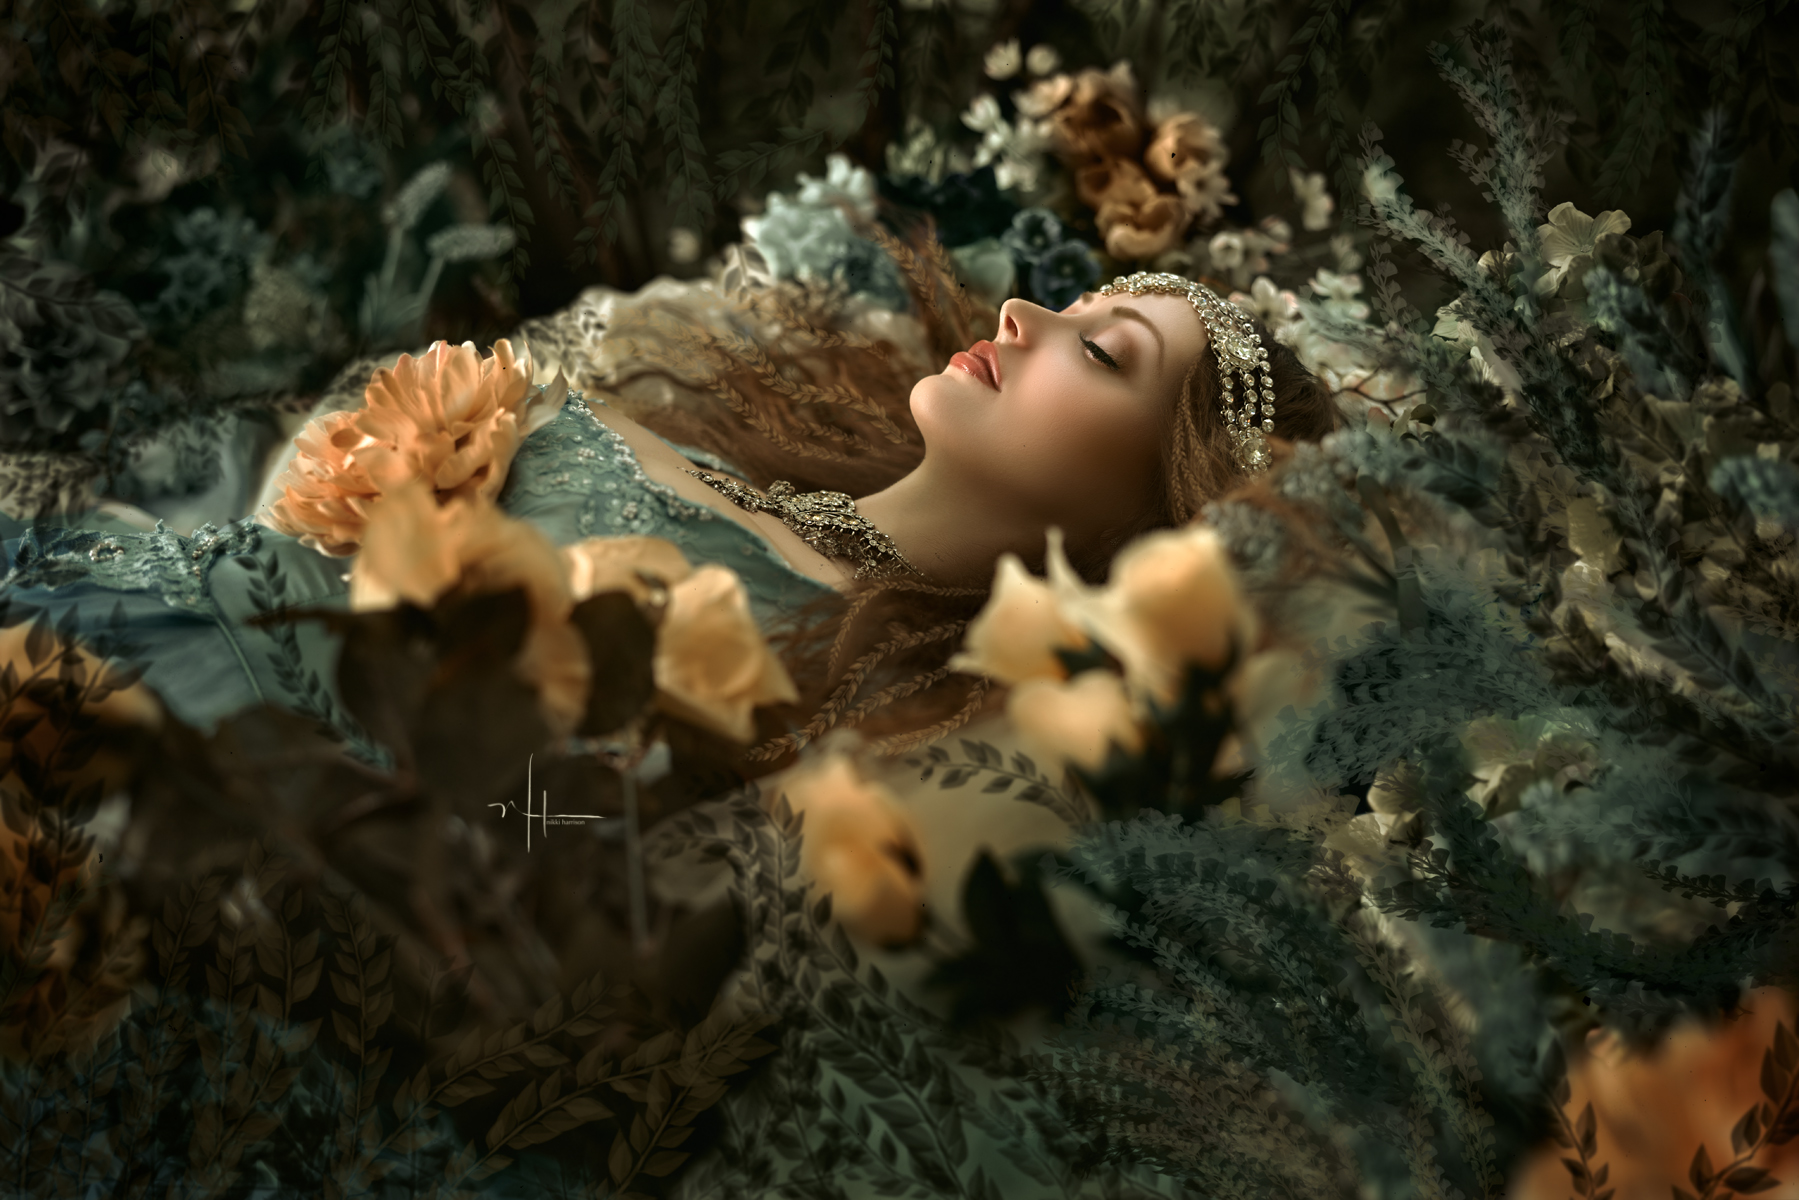 She lay in a bed of flowers, vines and sweet dreams…